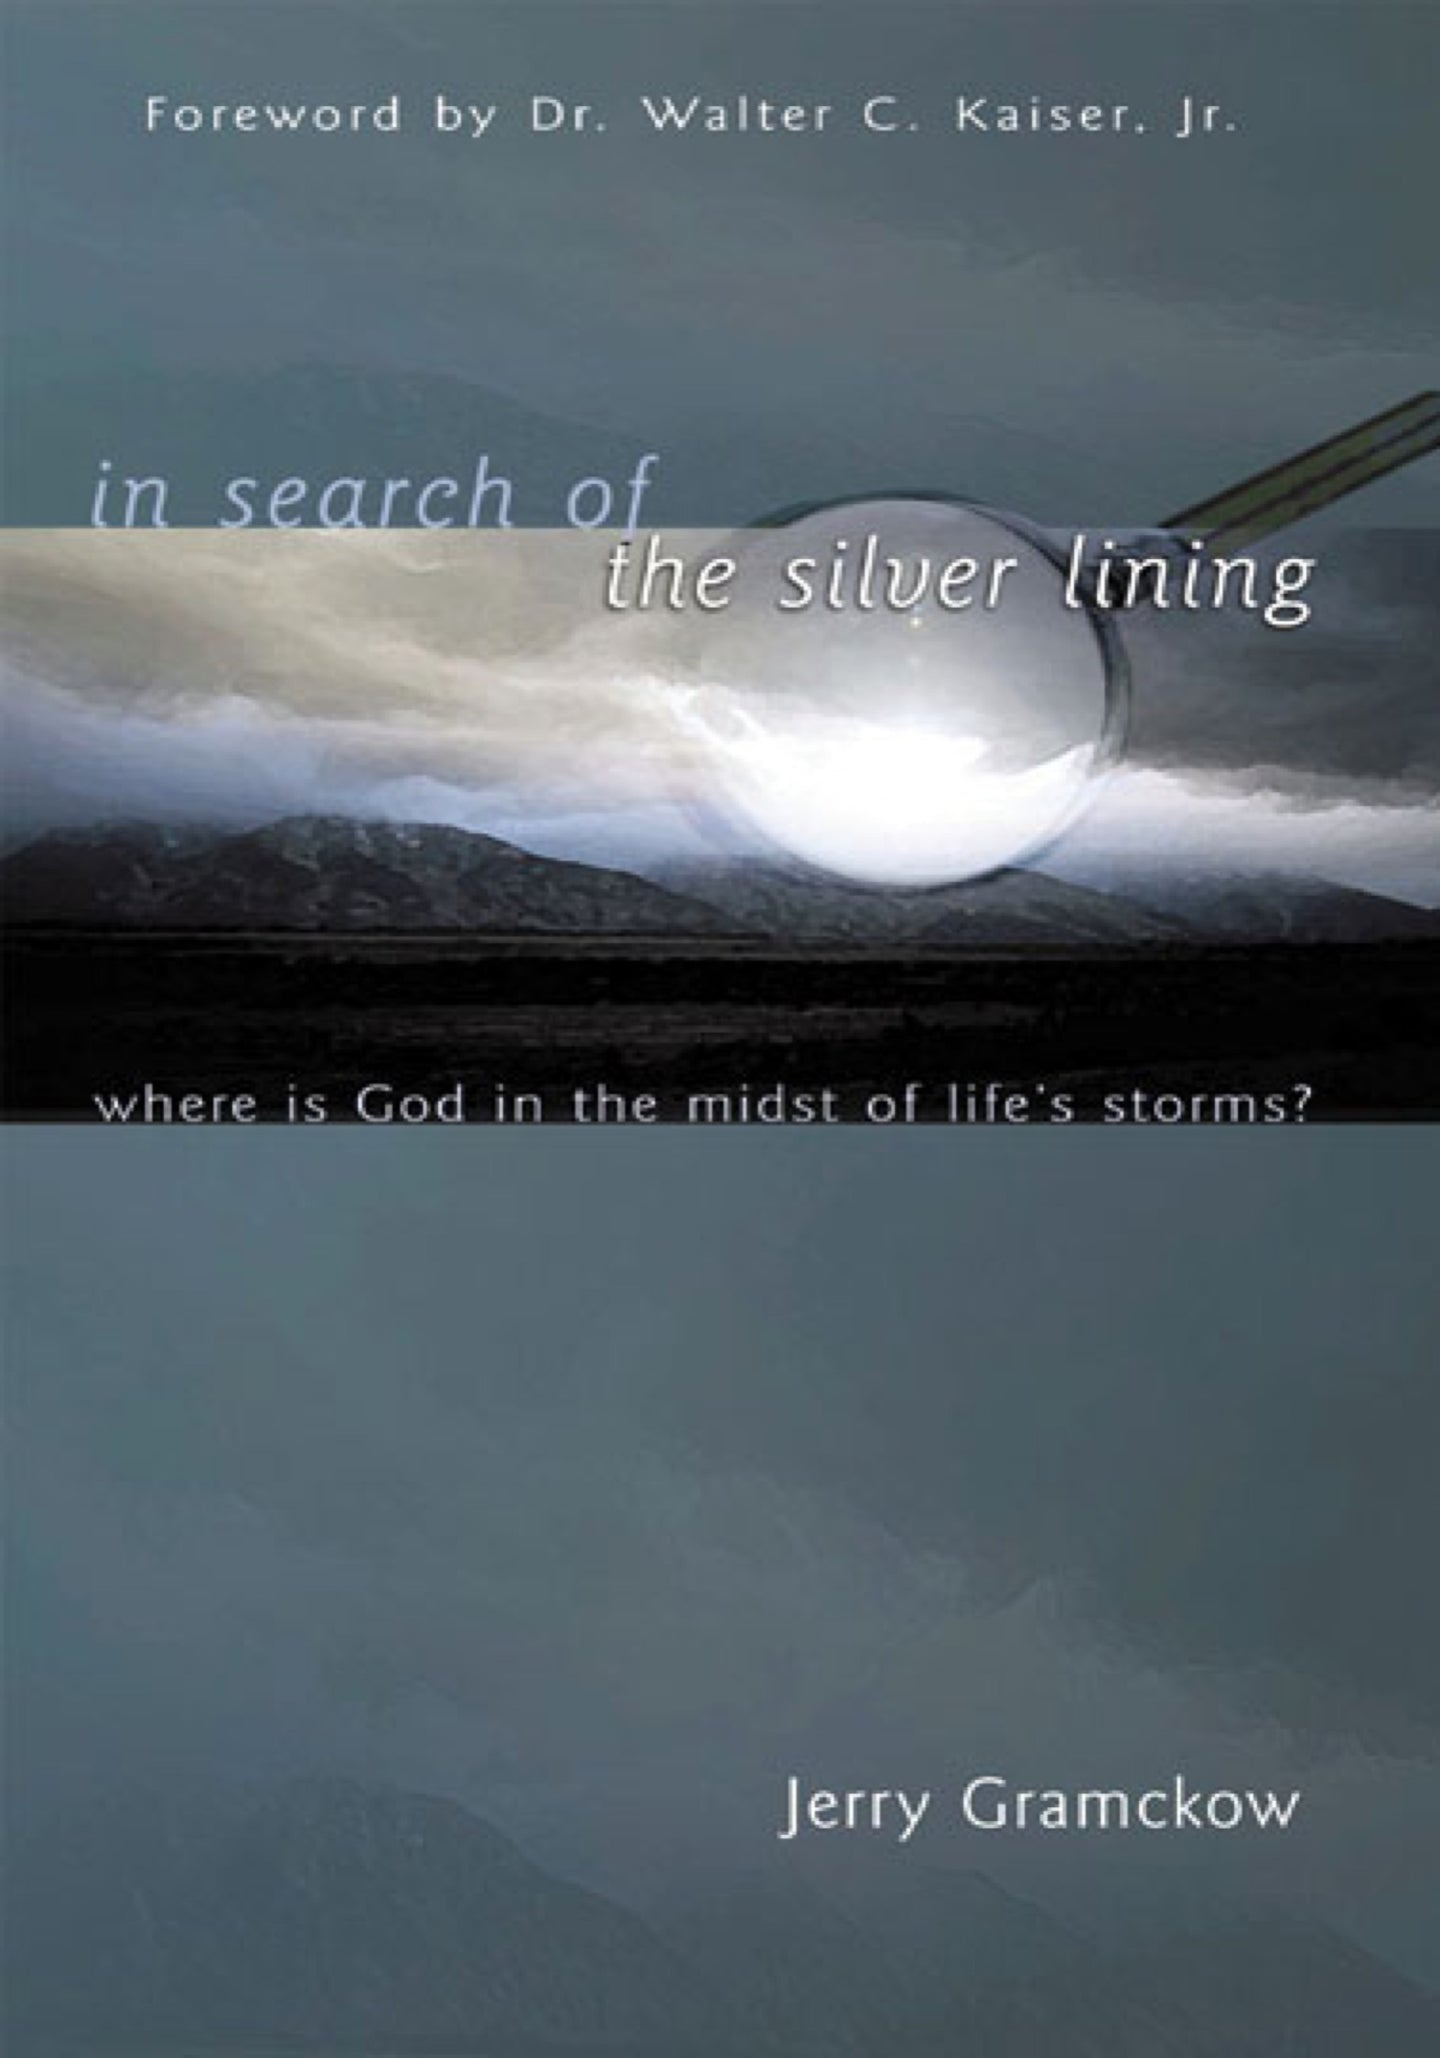 In Search of the Silver Lining: Where is God in the Midst of Life's Storms? by Jerry Gramckow